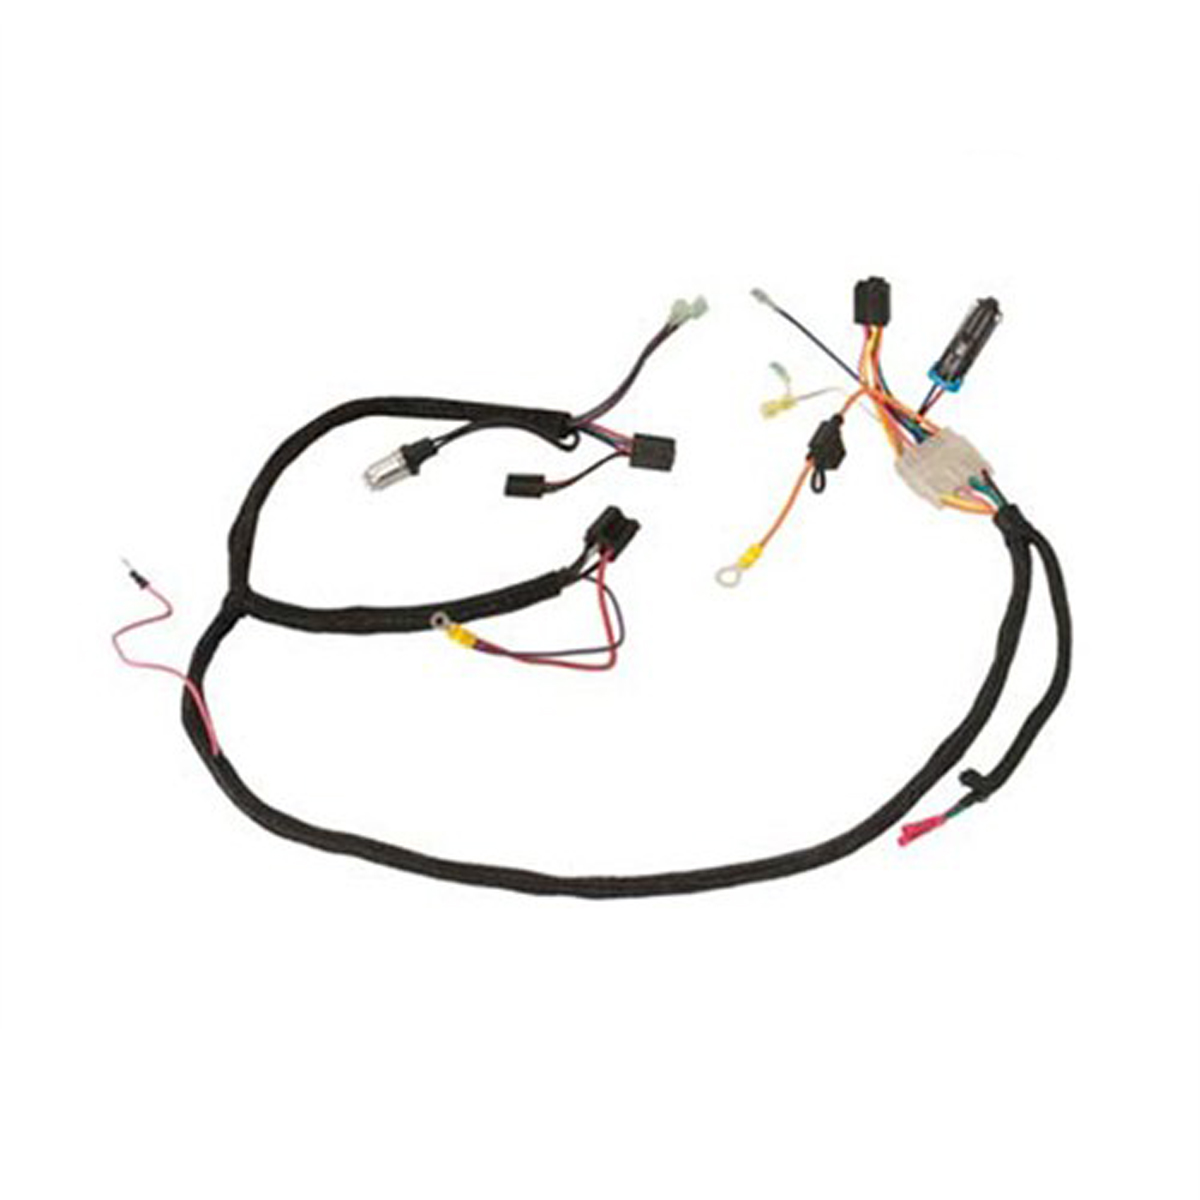 500002 Dixie Chopper Kohler EFI Wiring Harness